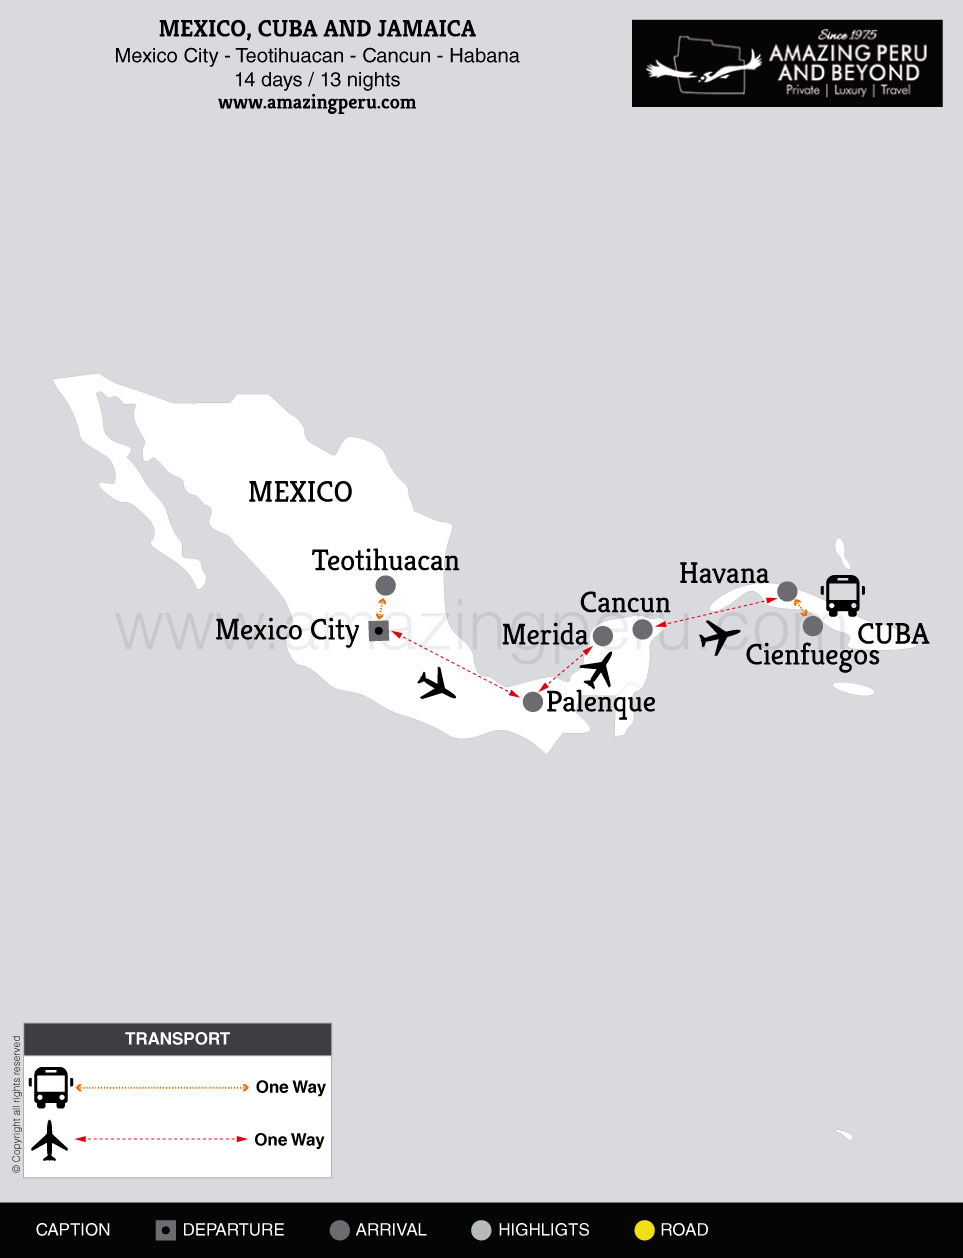 2020 Mexico, Cuba and Jamaica - 14 days / 13 nights.